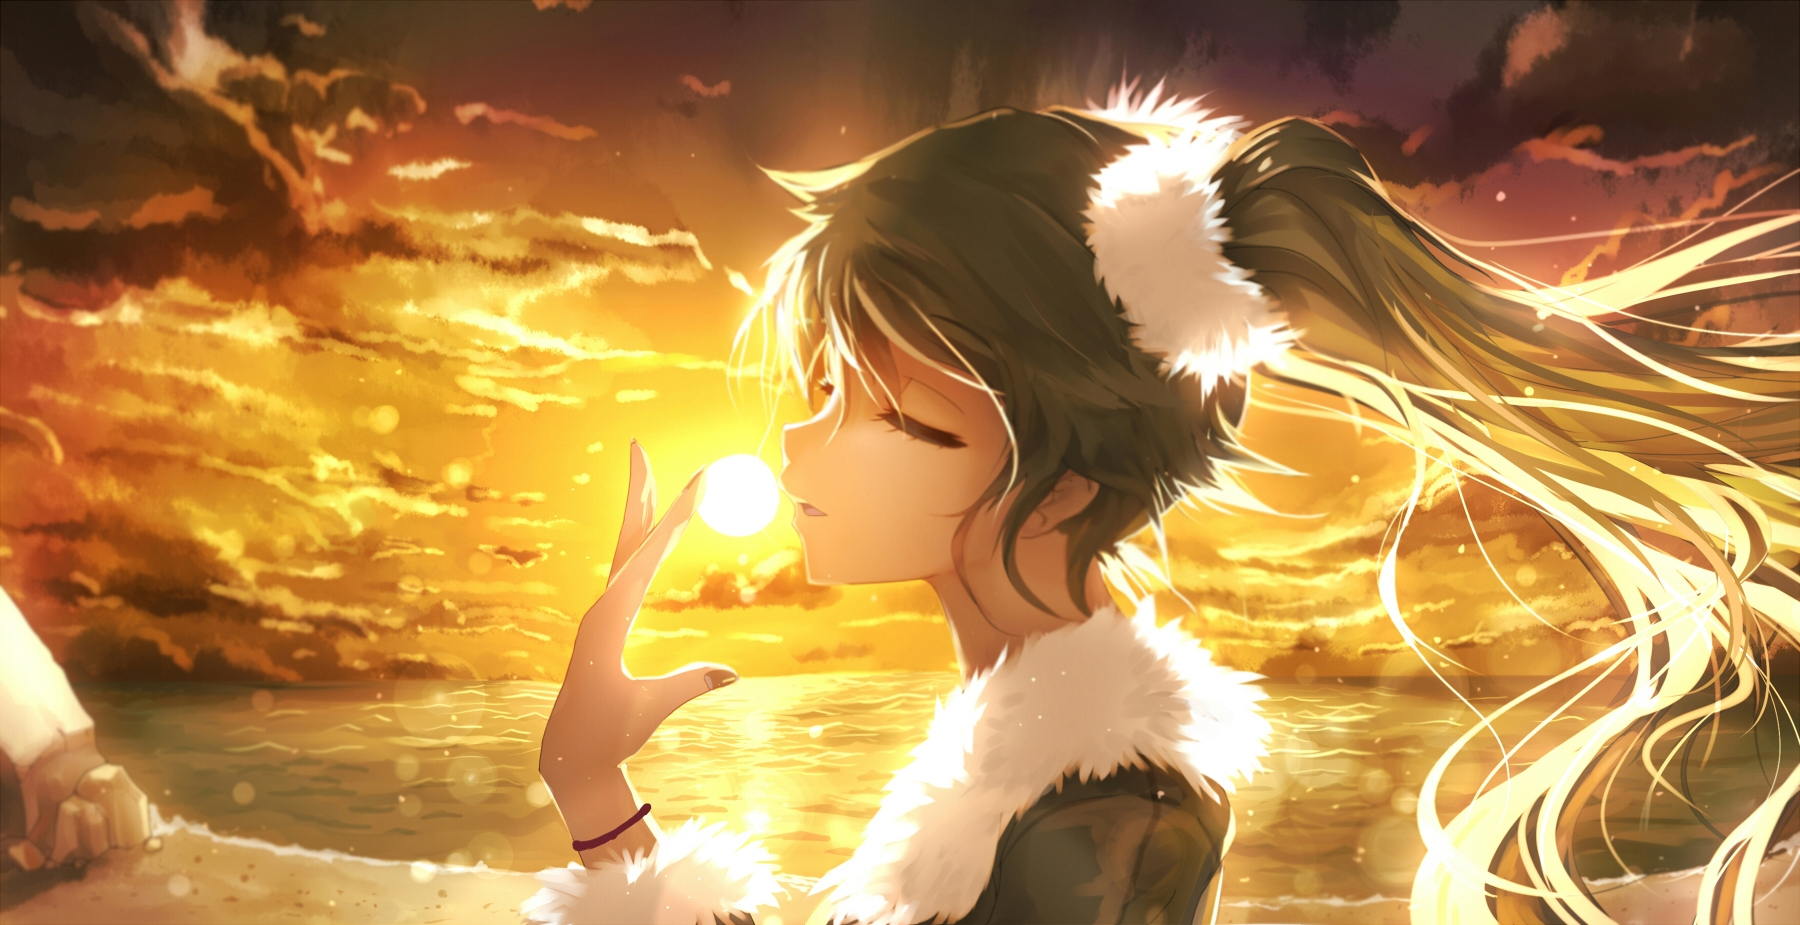 Vocaloid, Female, Twin Tails, Solo, One Girl, Sunset, Sunrise, Closed Eyes, Green Hair, Long Hair, Hatsune Miku, Nail Polish, Water, Ocean, Rocks, Side View, Open Mouth, Hair Ornament, Long Sleeves, Girl, Clouds, Beach